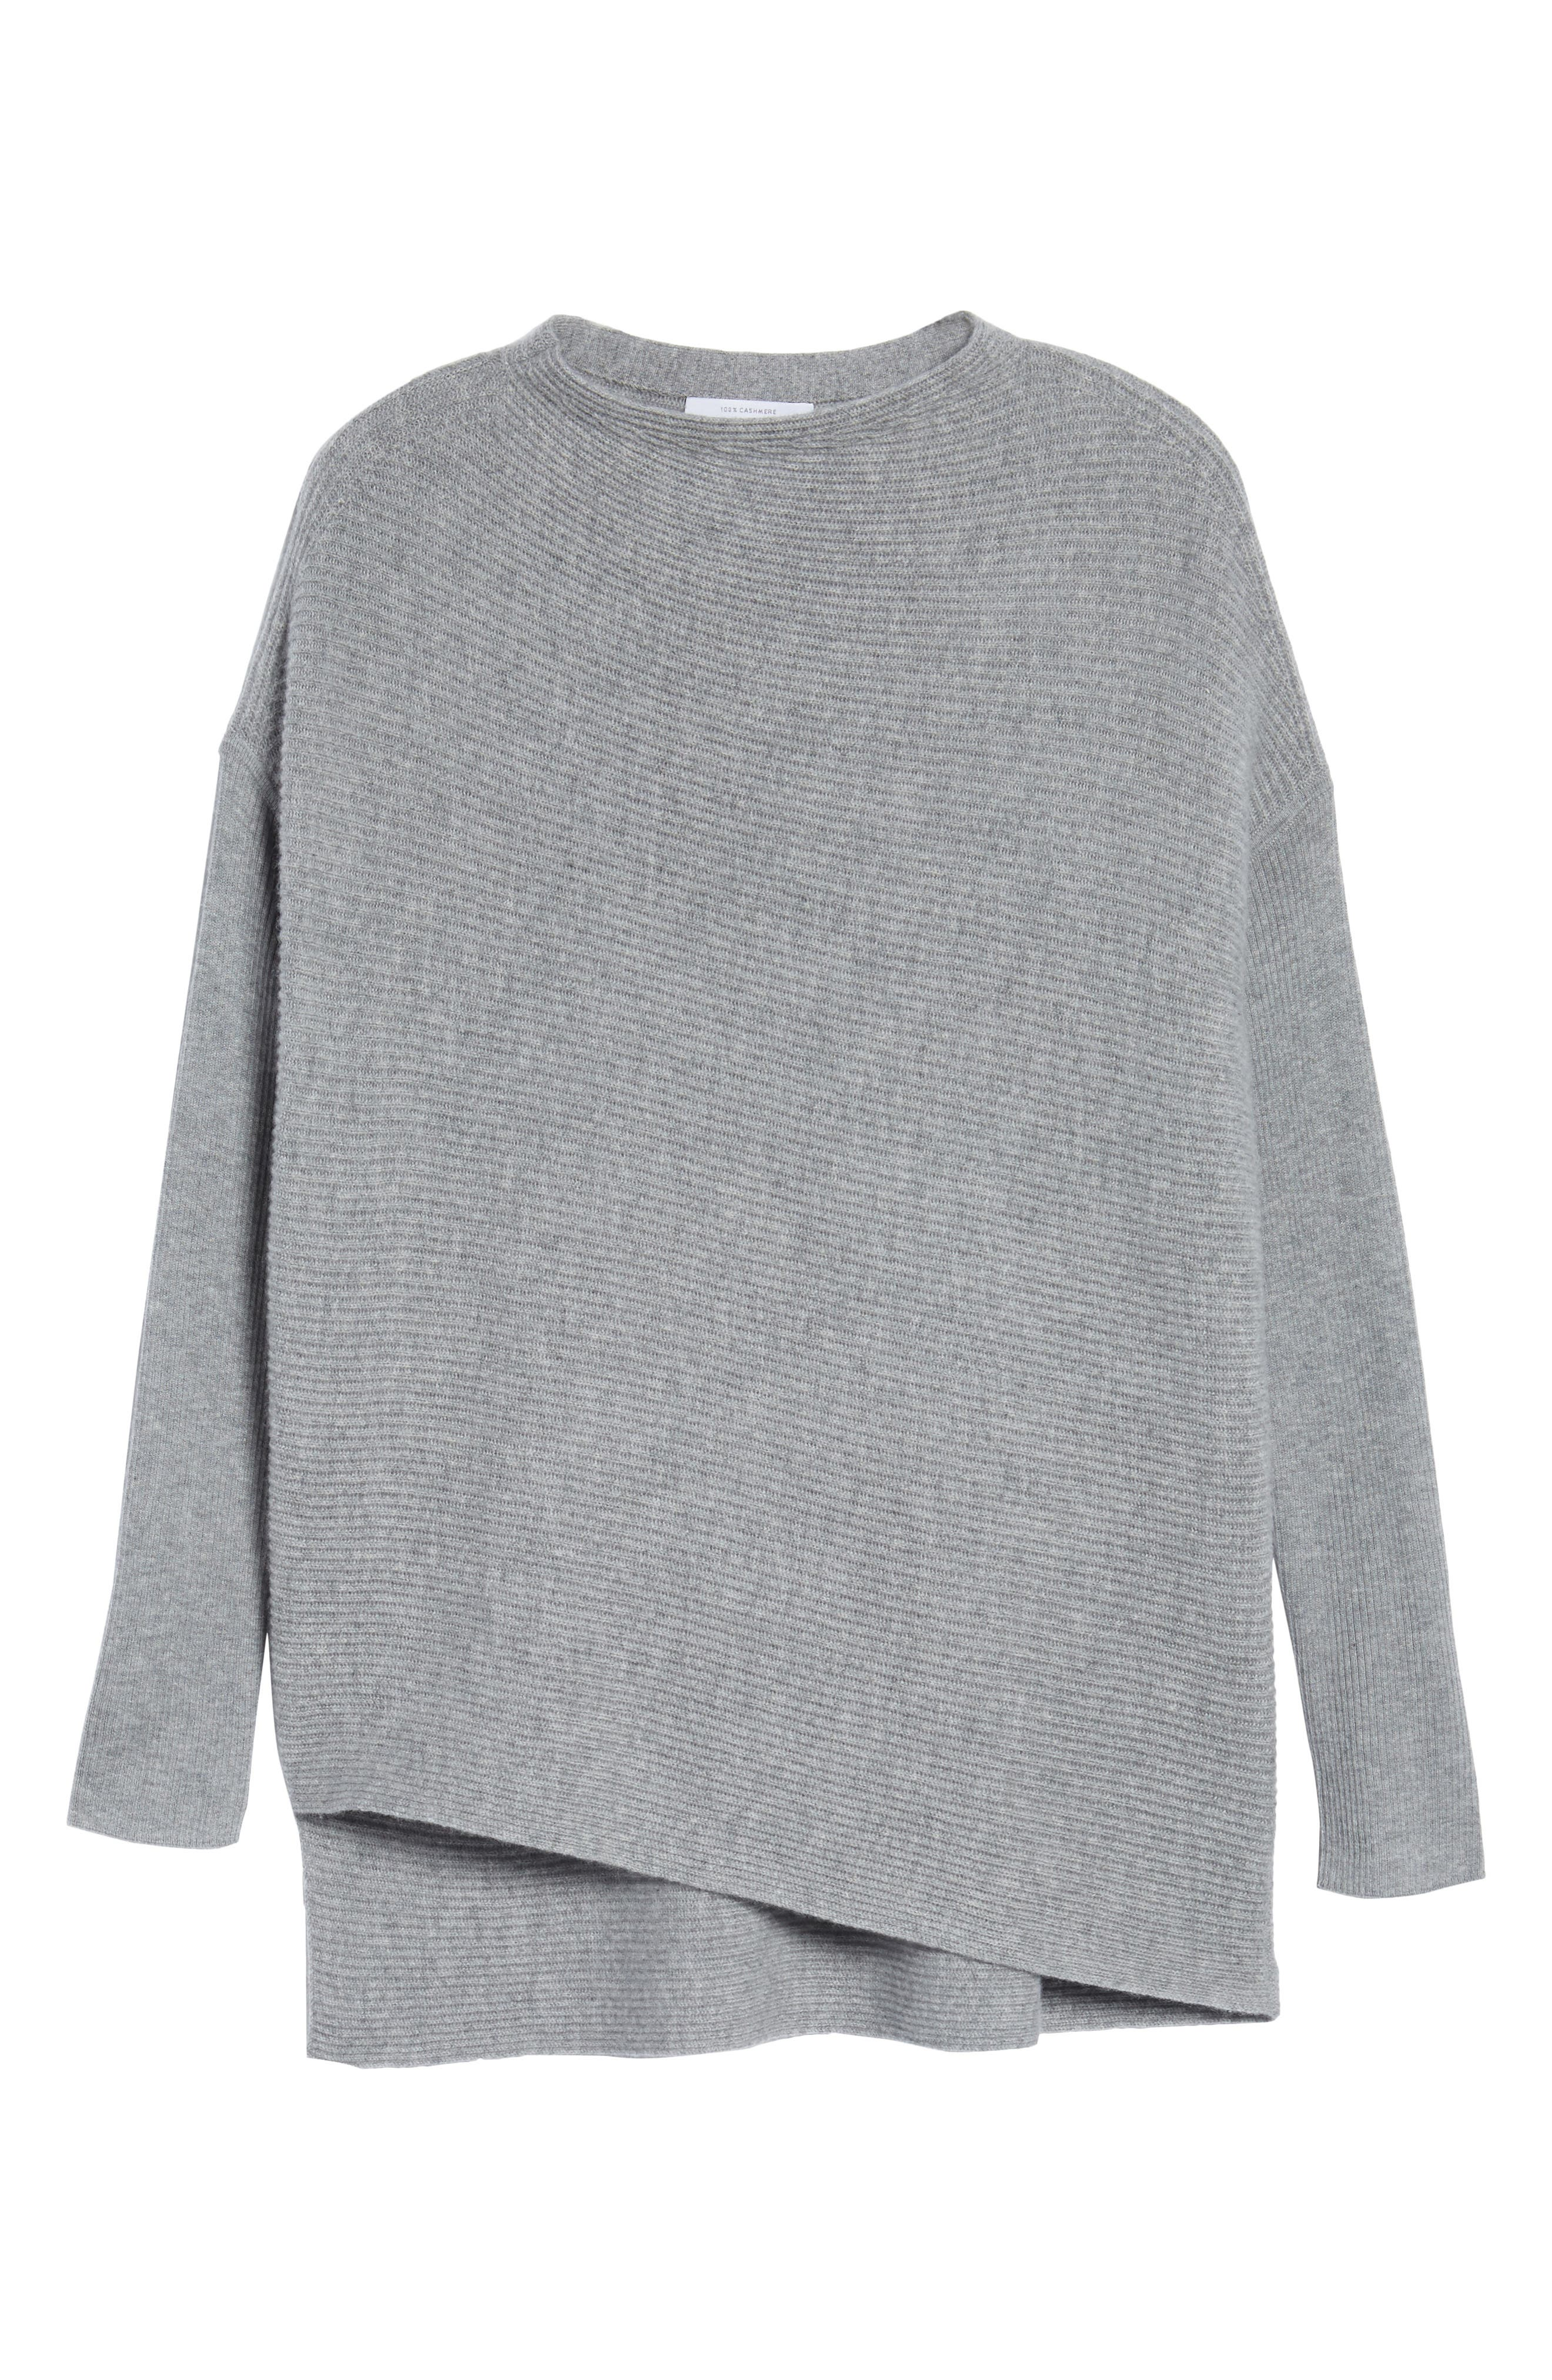 NORDSTROM SIGNATURE, Cashmere Asymmetrical Pullover, Alternate thumbnail 6, color, GREY FILIGREE HEATHER